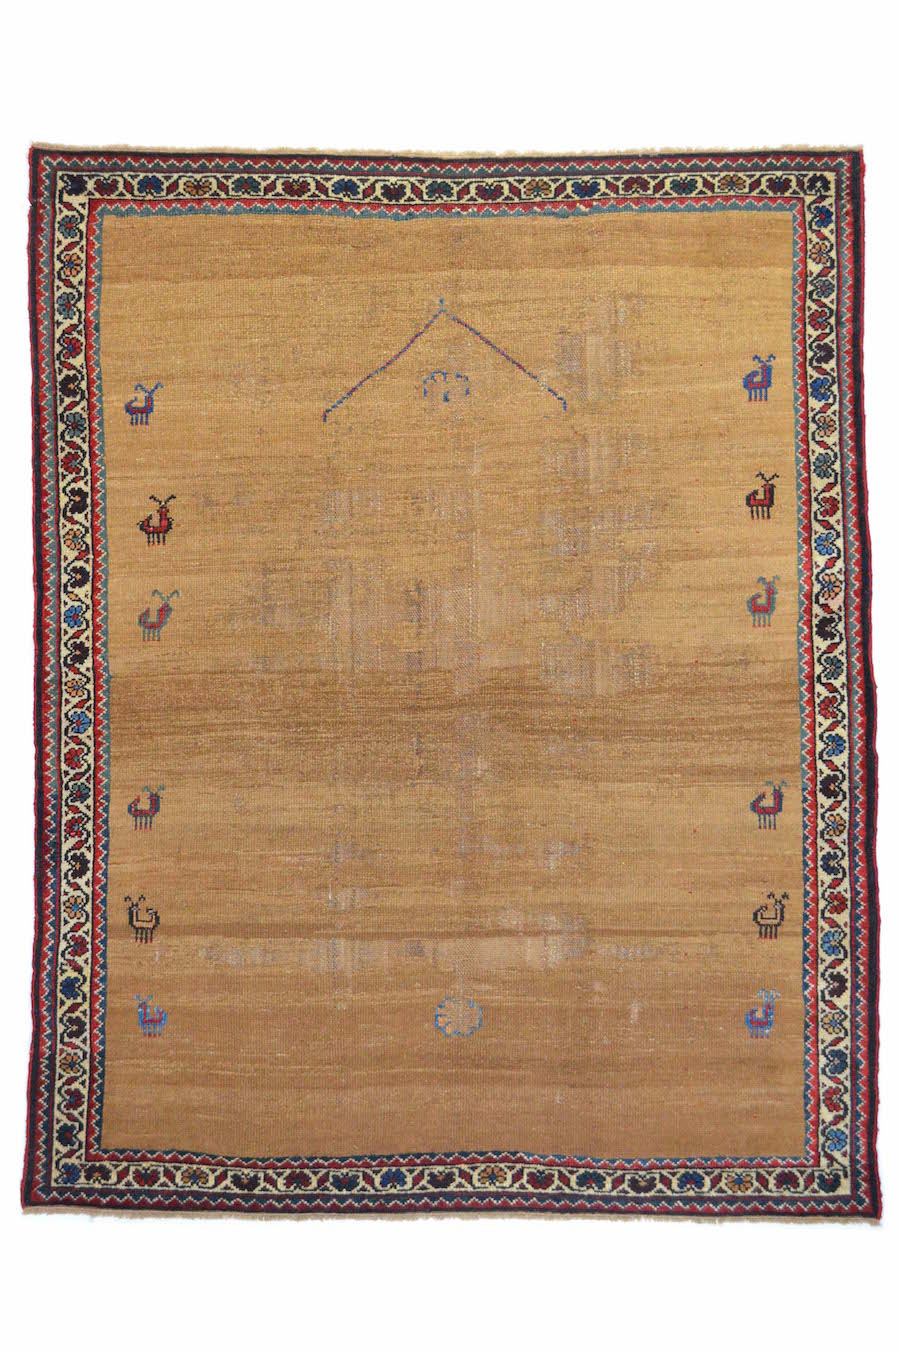 Northwest Persian prayer rug